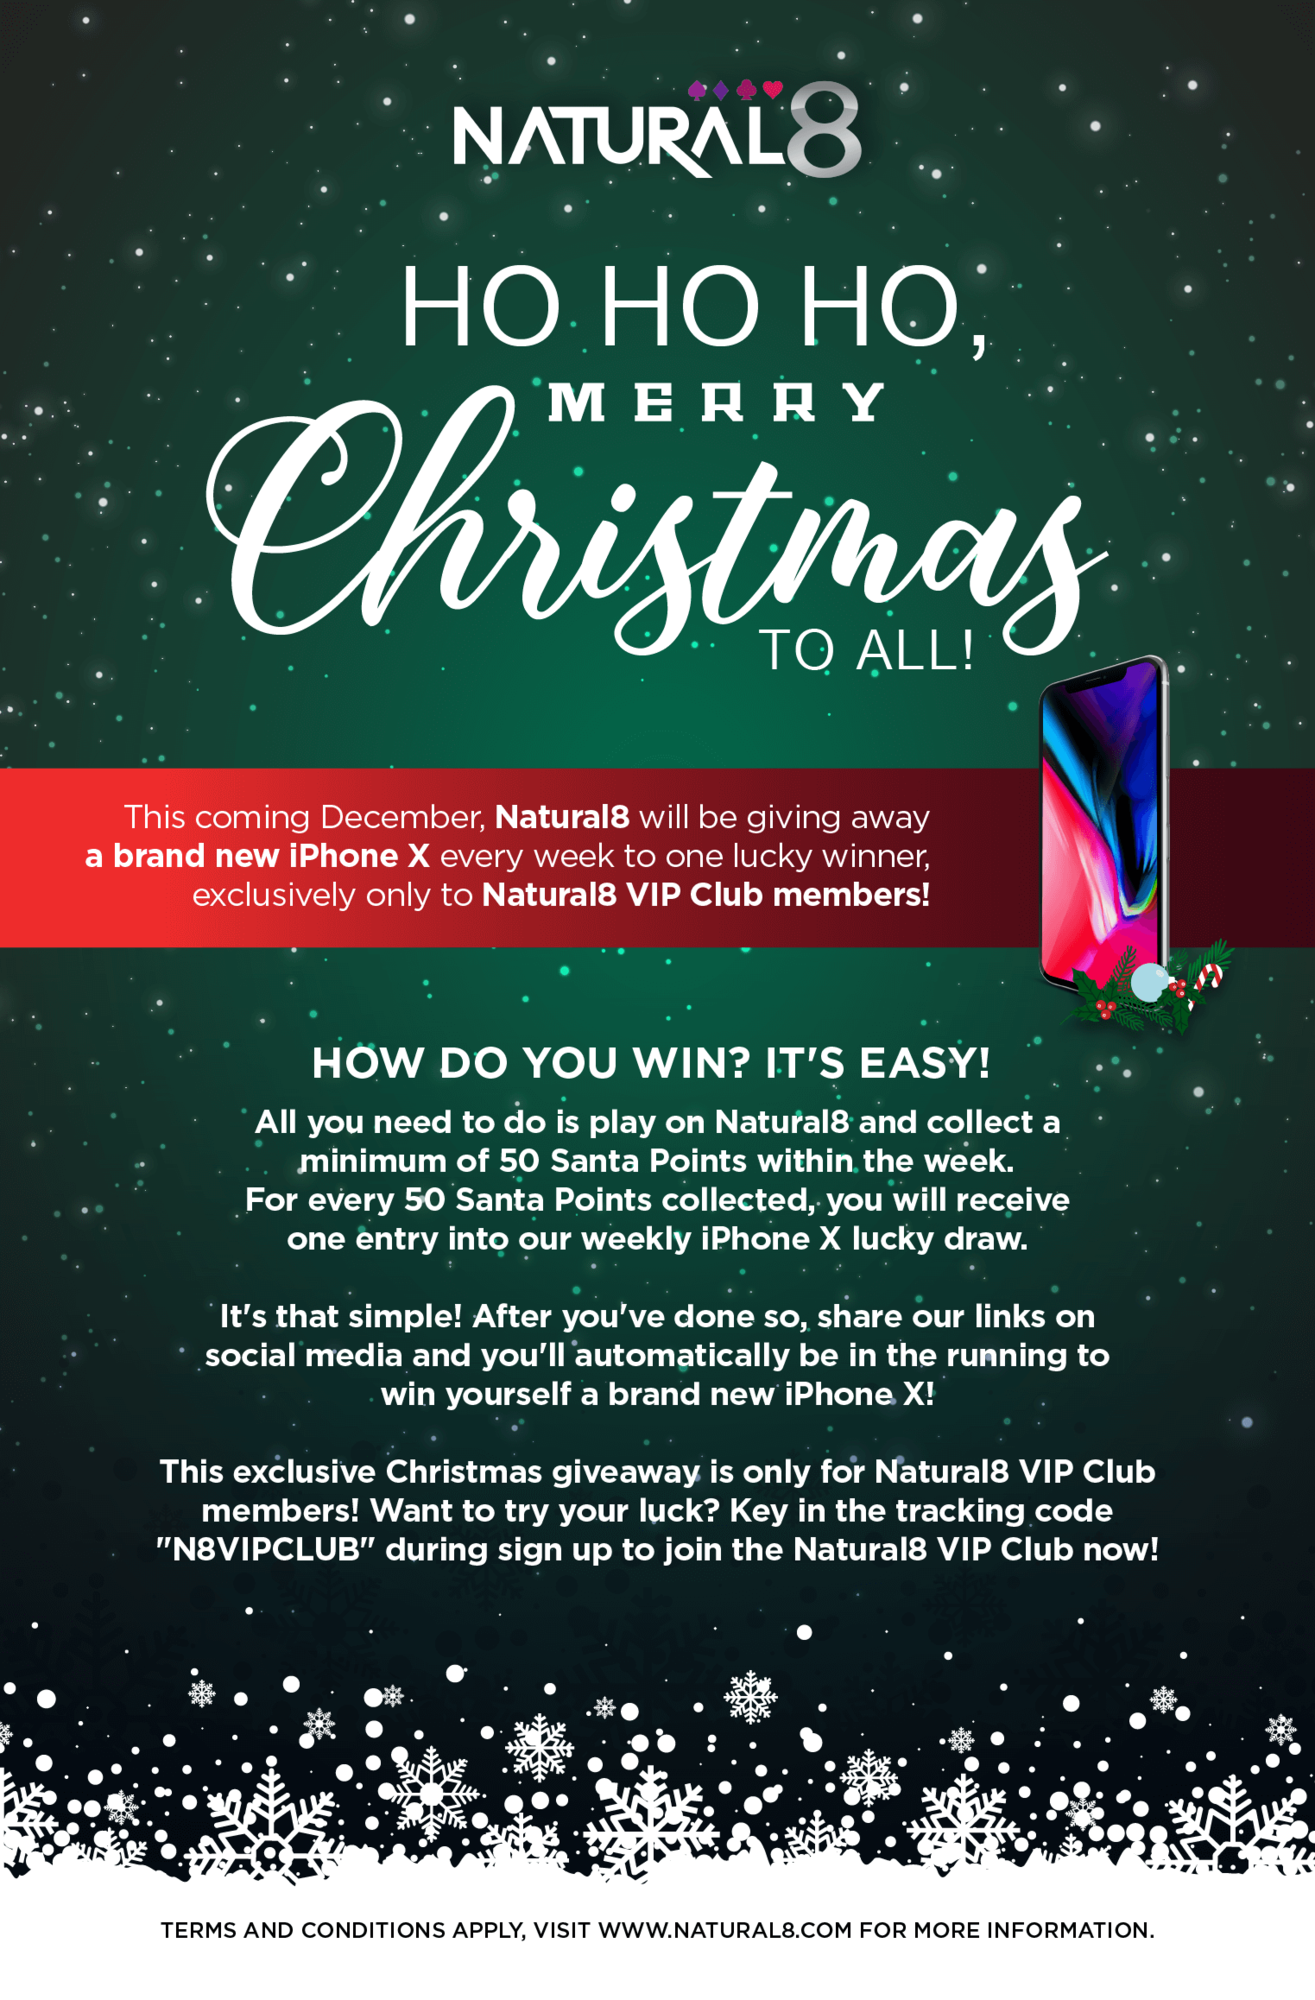 Christmas Giveaway Flyer.Natural8 Latest News Natural8 Vip Club Iphone X